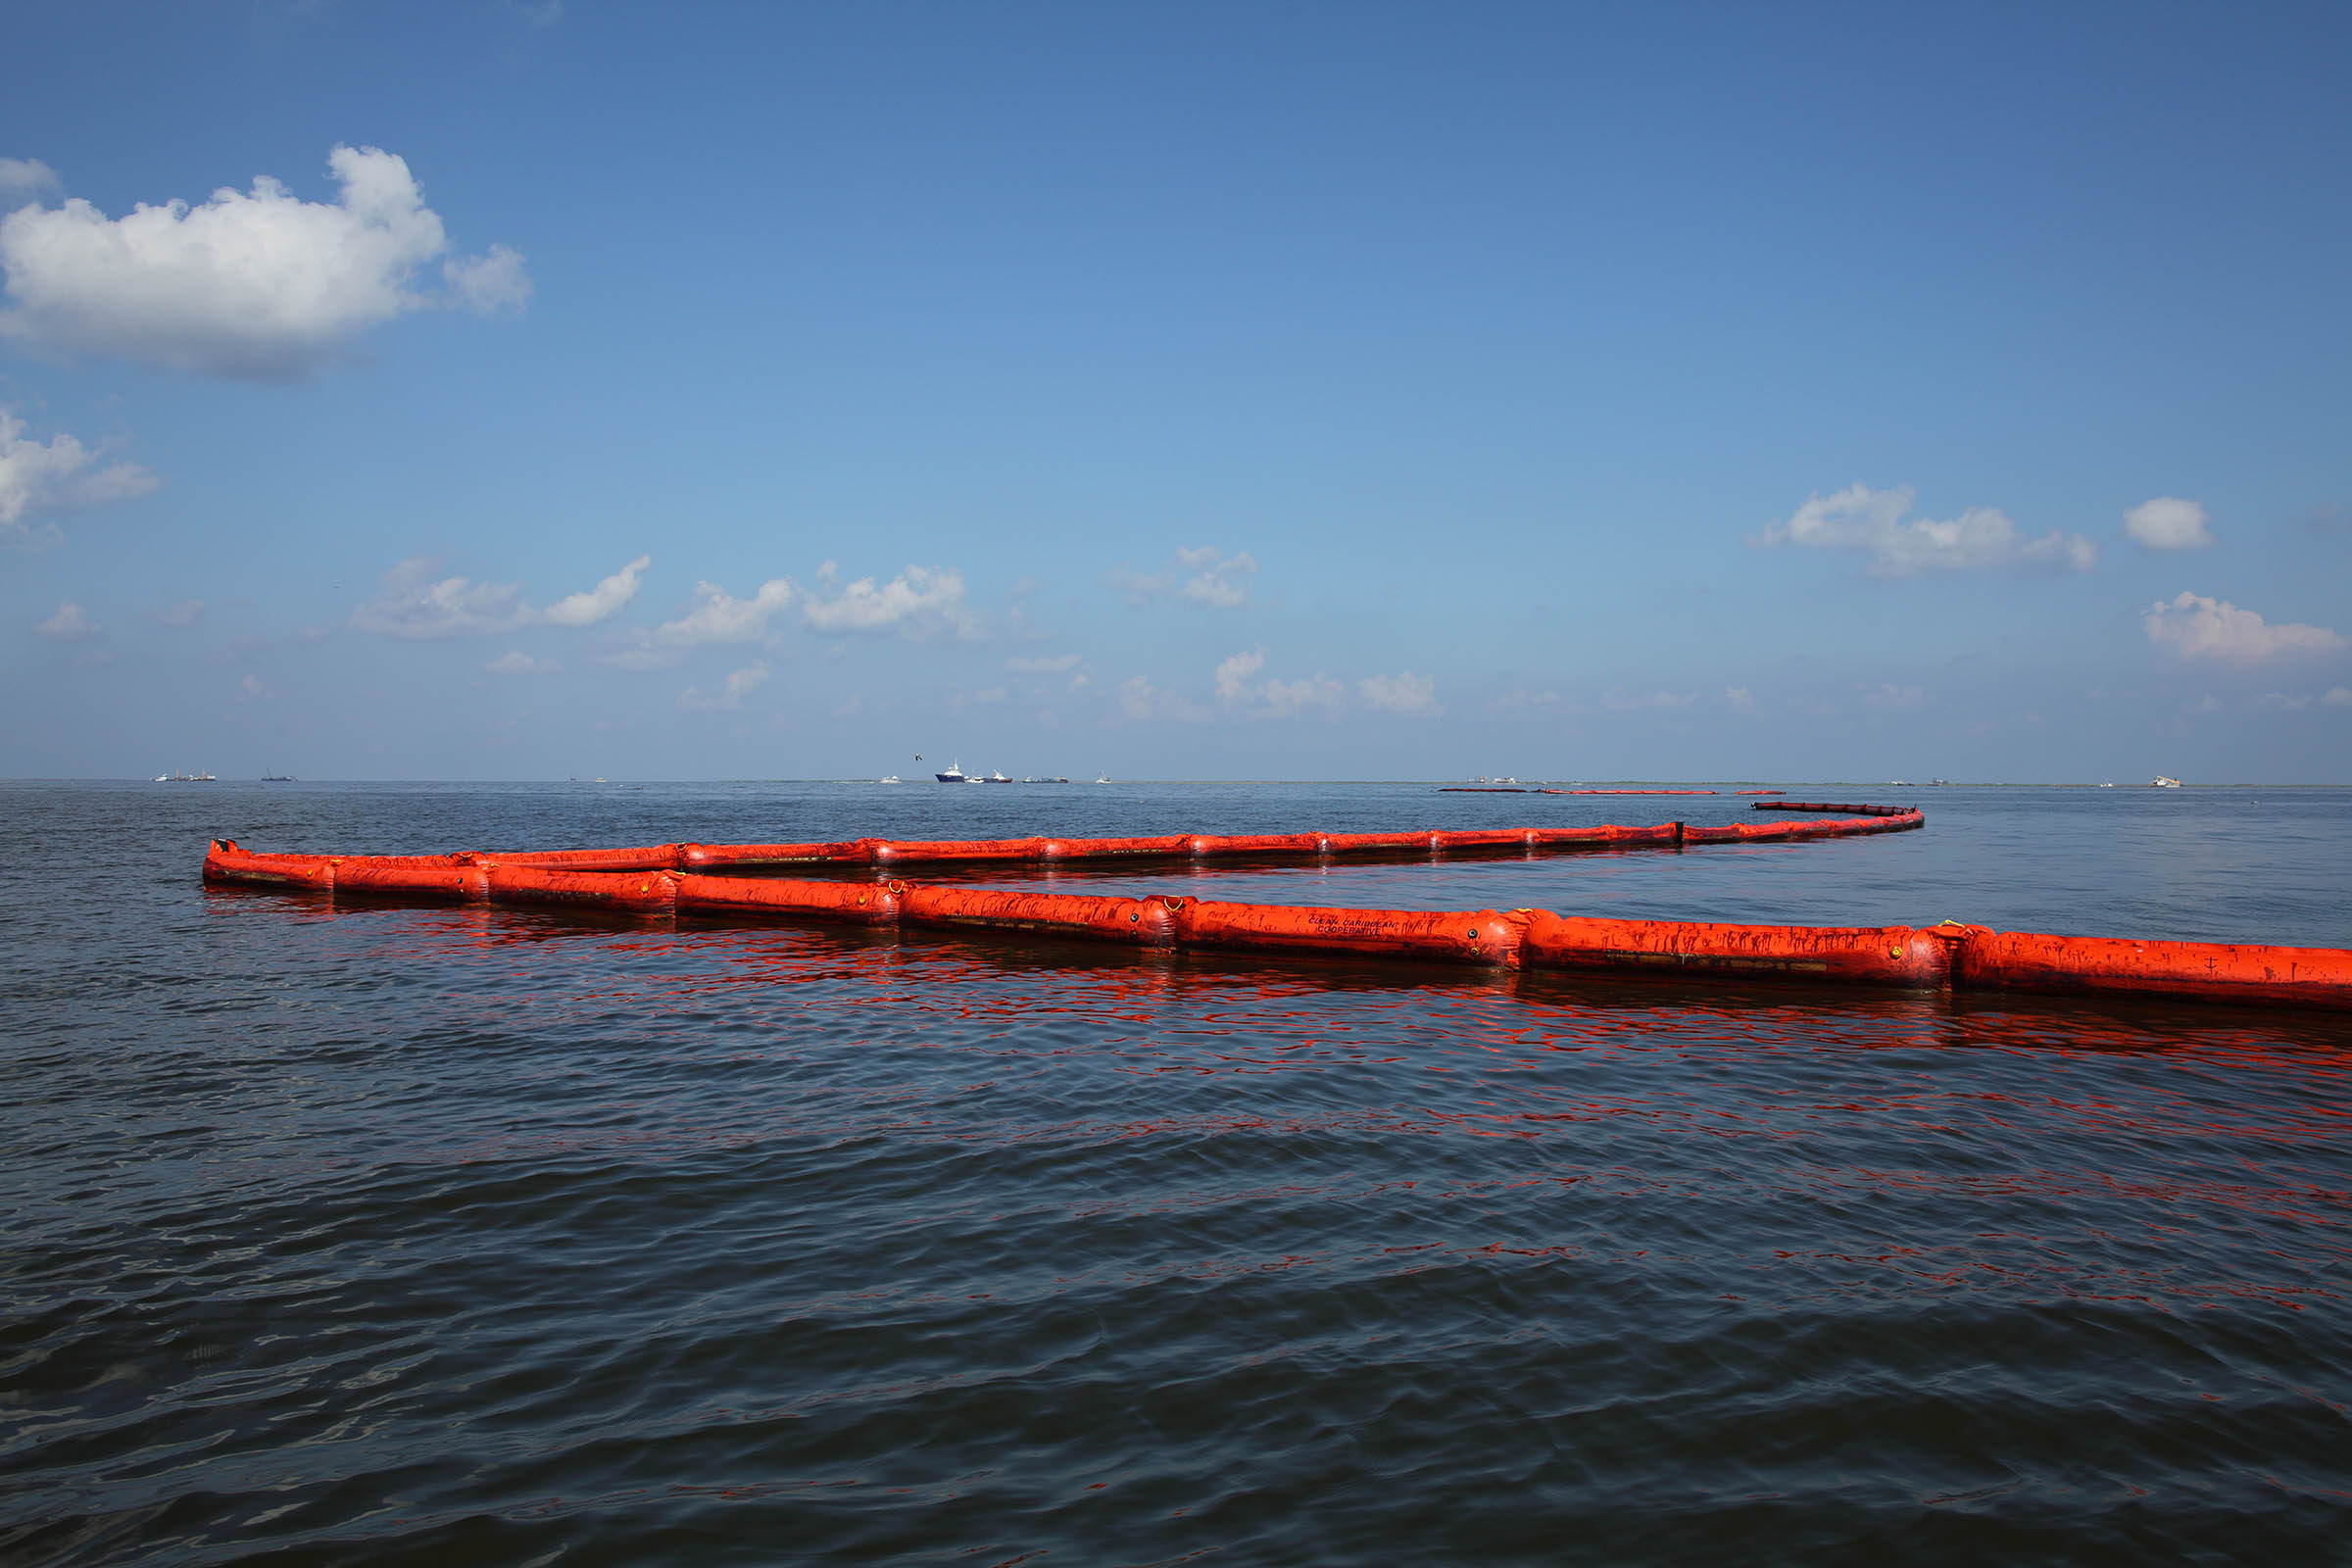 Oiled Booms, Barataria Bay near Queen Bess Island, Grand Isle, Louisiana 2010